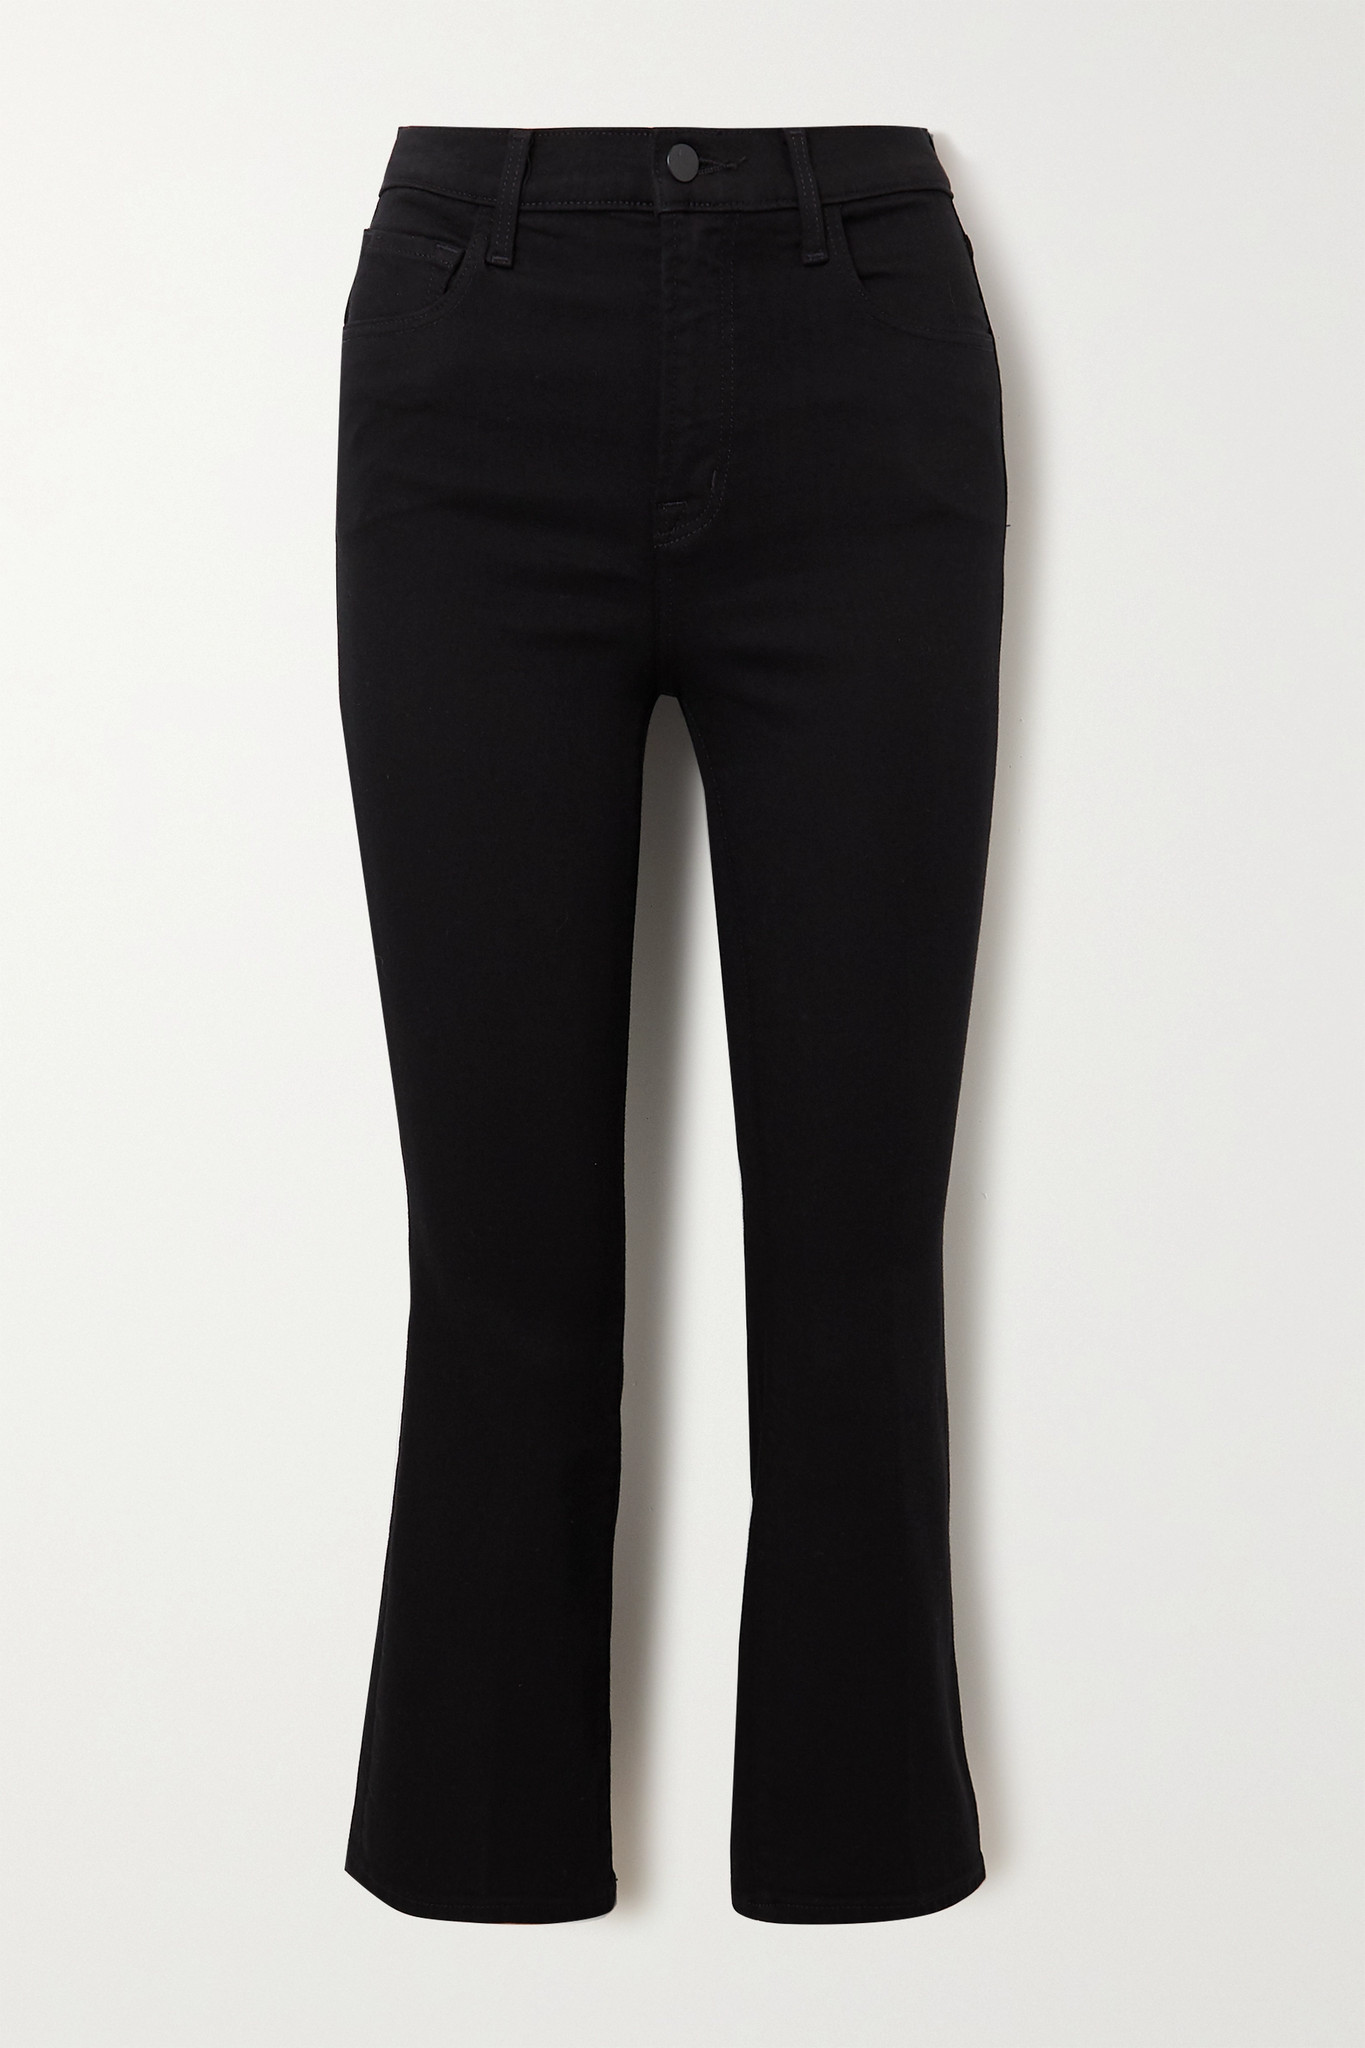 J BRAND - Franky Cropped High-rise Bootcut Jeans - Black - 31